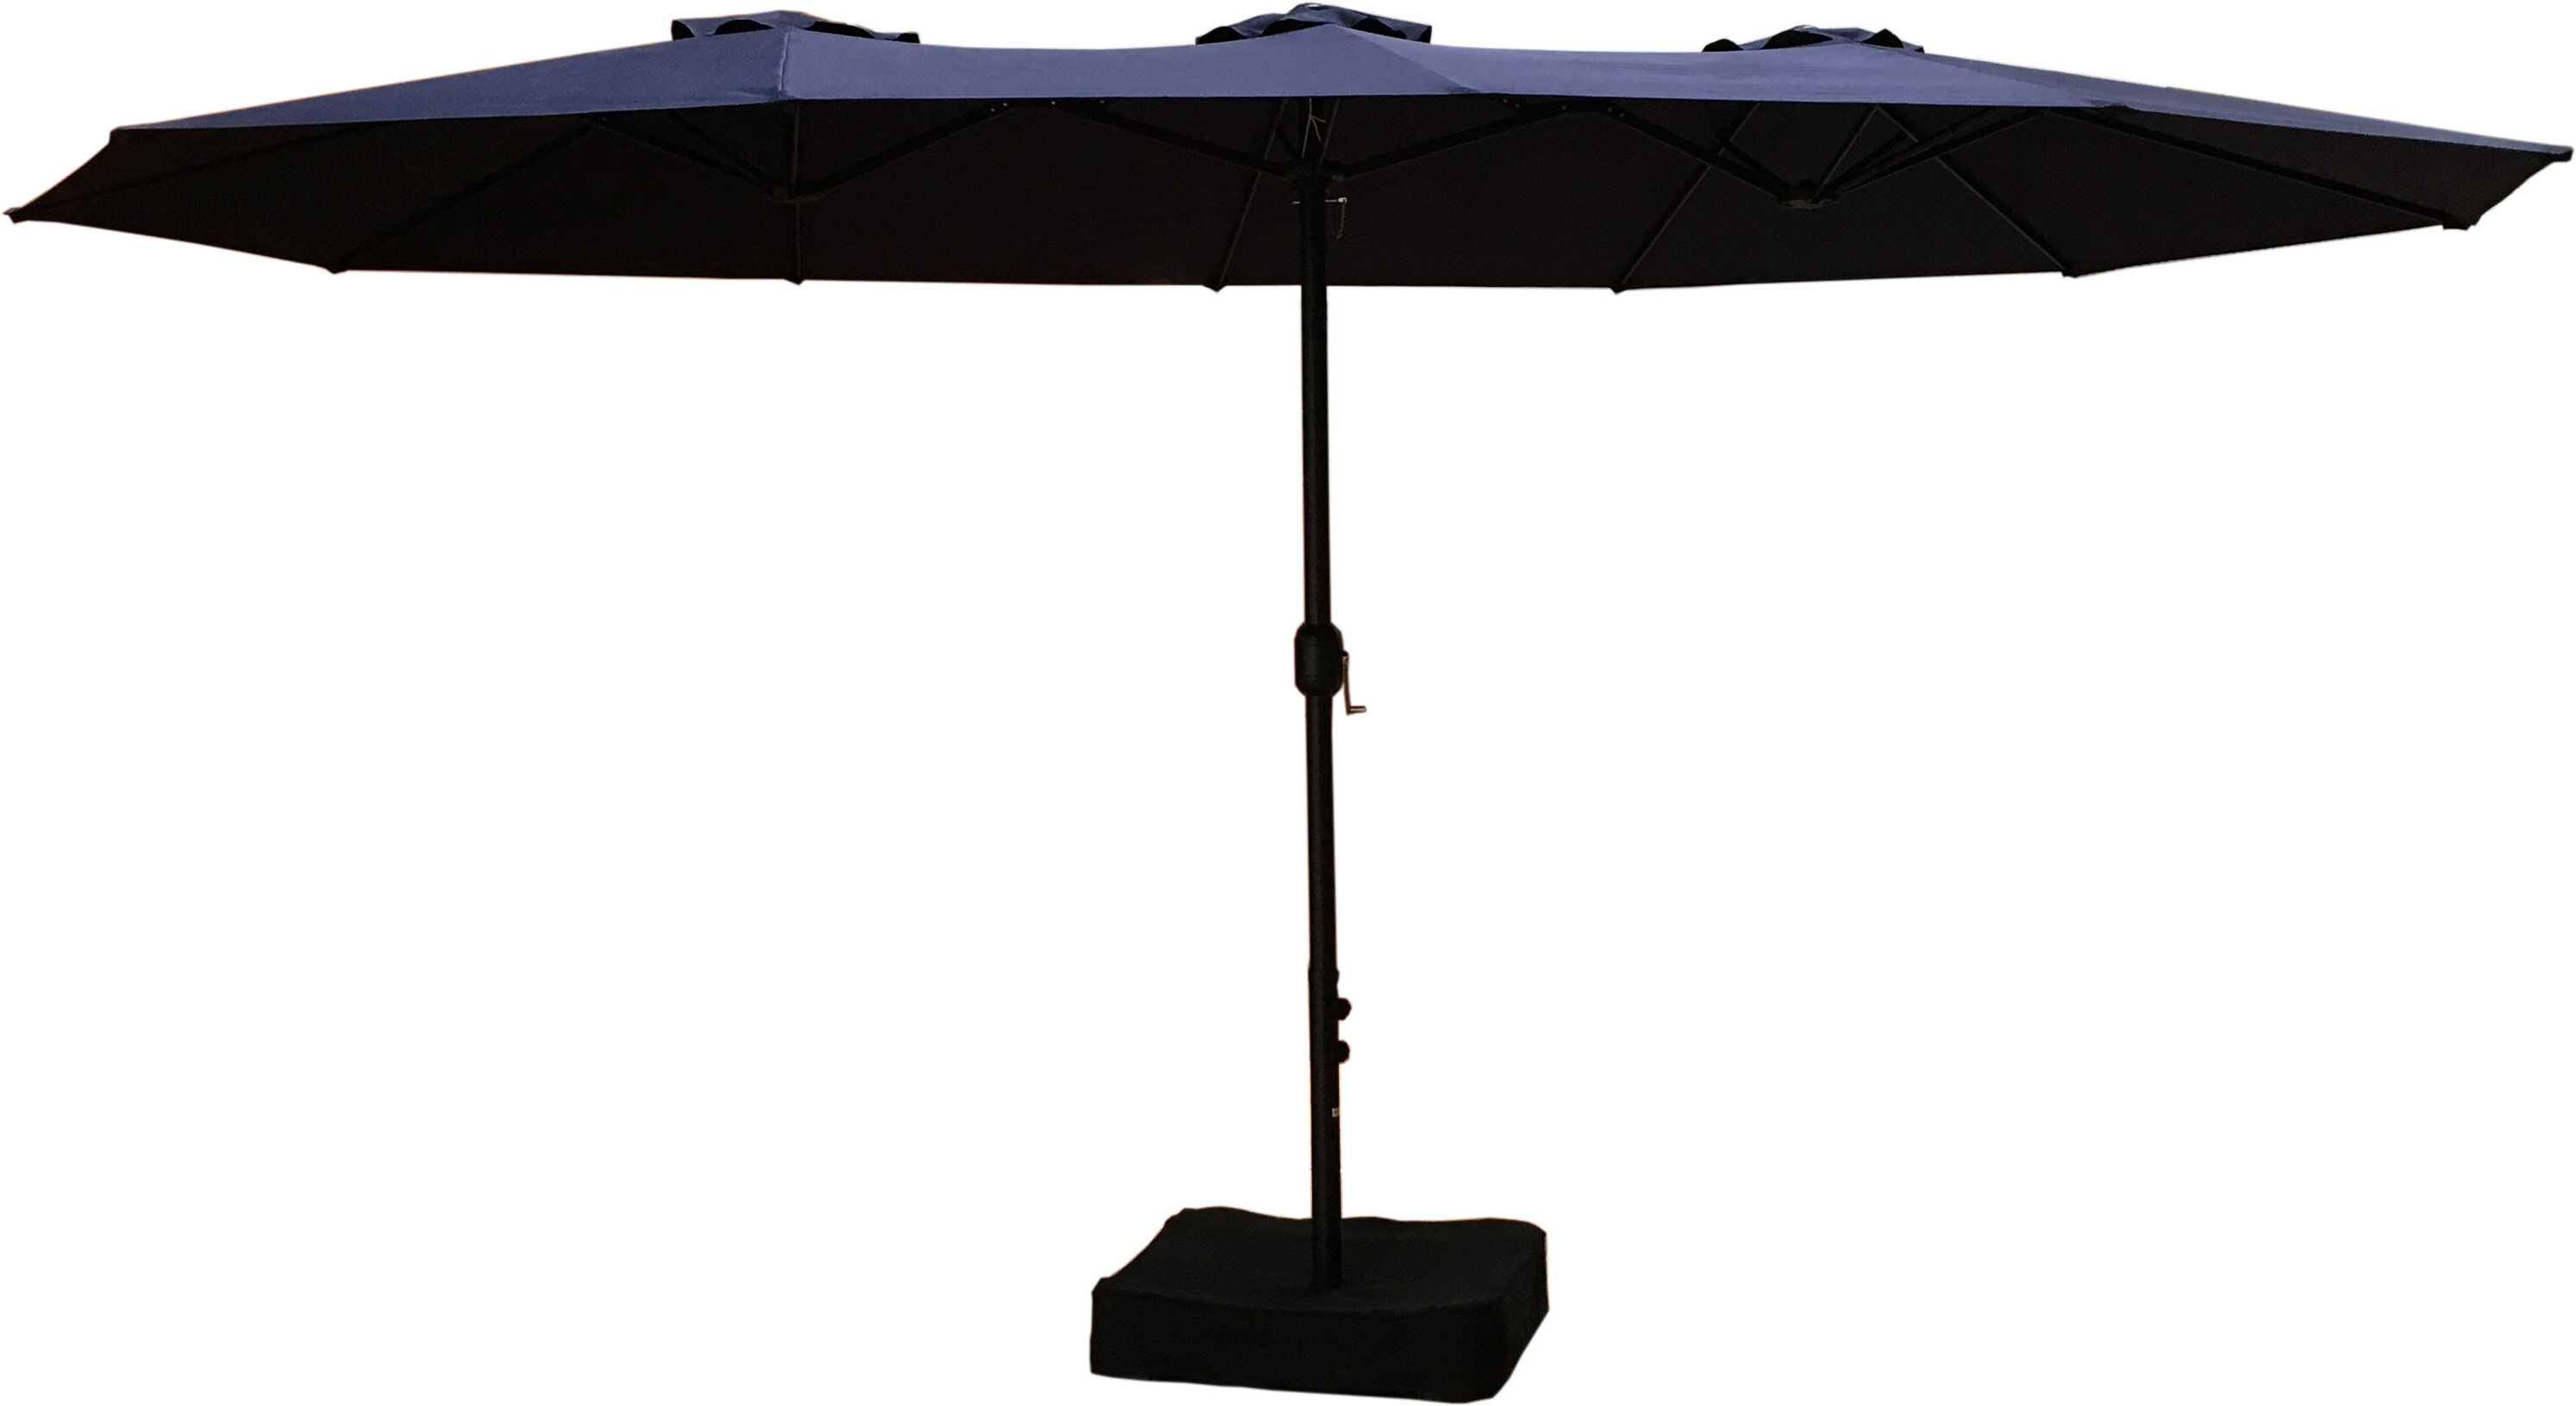 Keane 15' Market Umbrella For Most Current Madalyn Rectangular Market Sunbrella Umbrellas (Gallery 7 of 20)